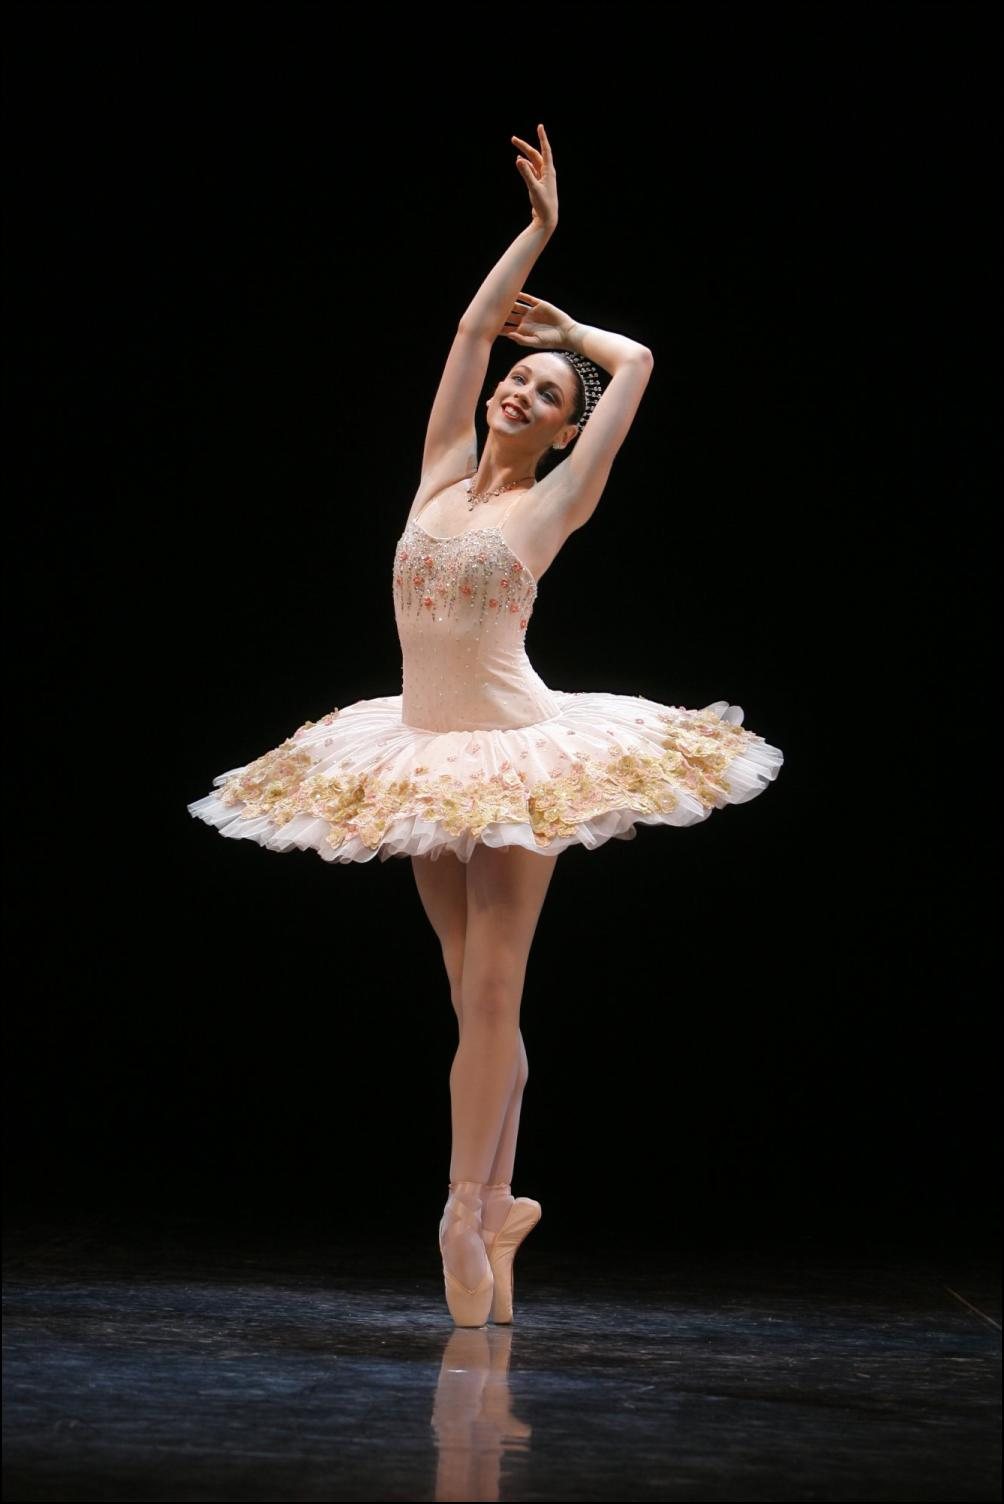 Smiling Ballet Dancer 122.95 Kb